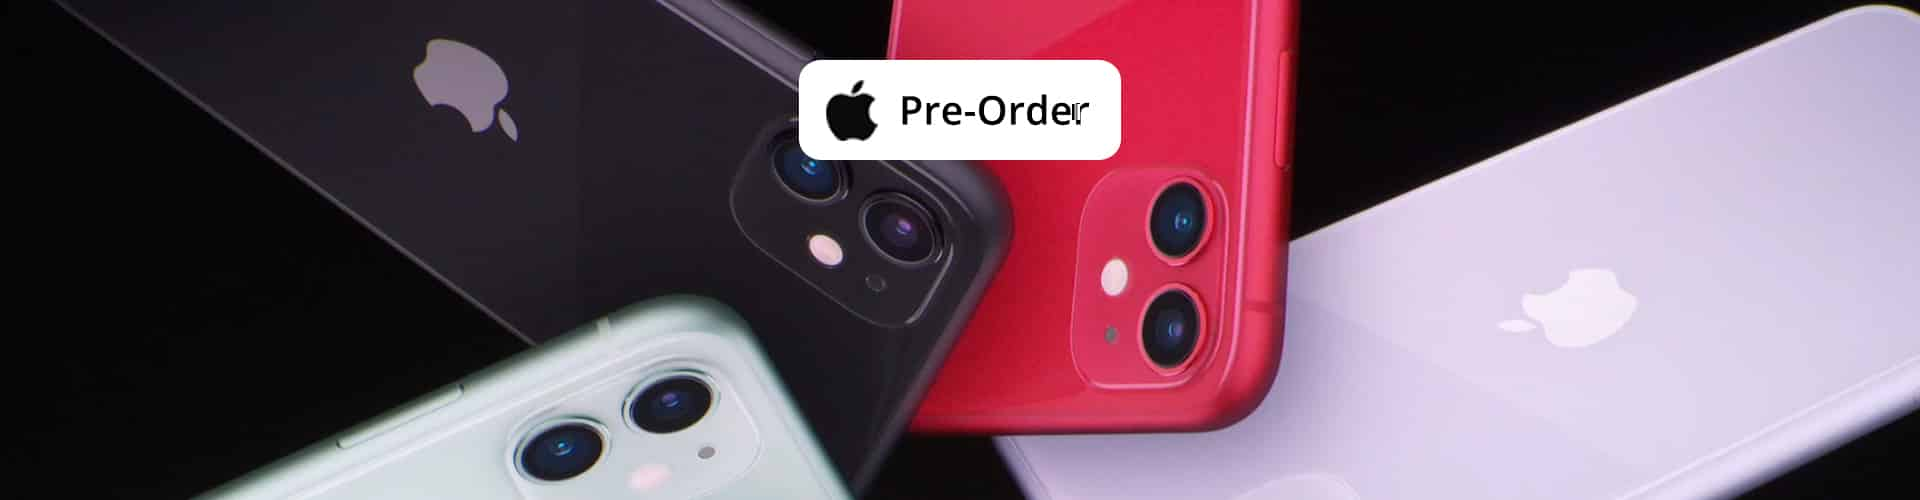 Pre-Order the latest iPhone 11 / iPhone 11 Pro / iPhone 11 Pro Max